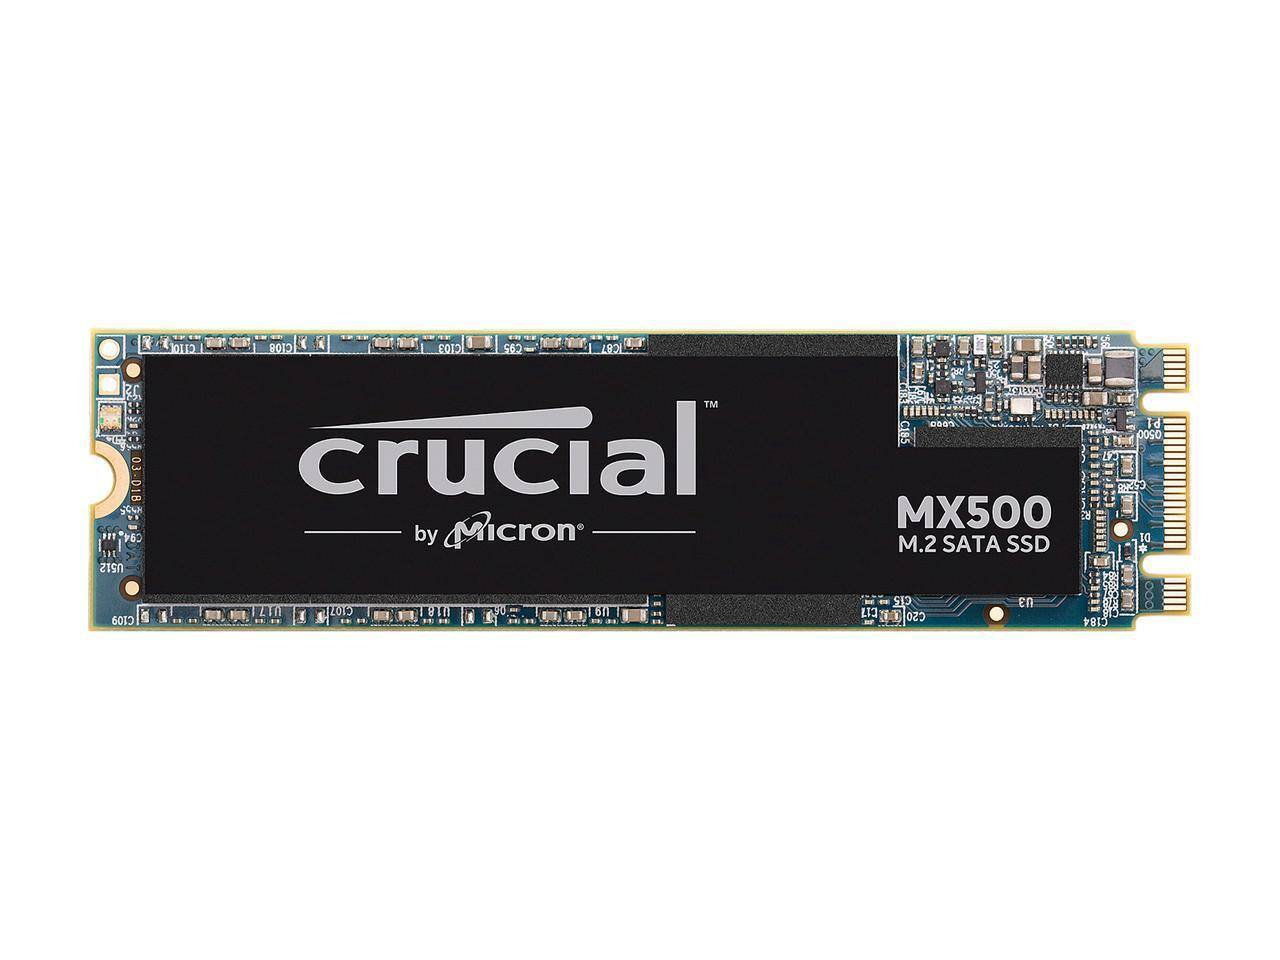 500GB Crucial MX500 M.2 2280 SATA III 3D NAND Solid State Drive $54.99 + Free Shipping